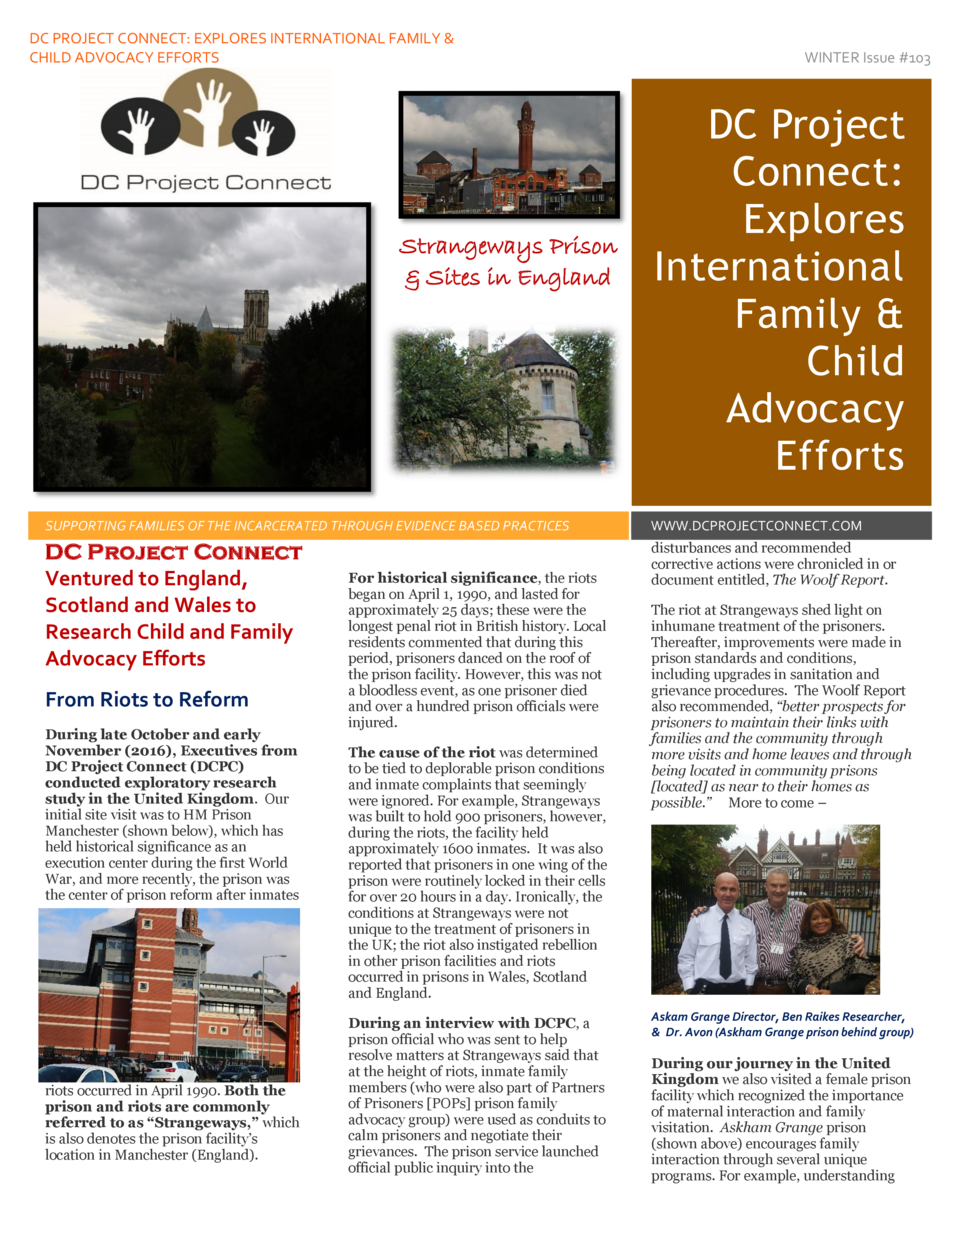 DC PROJECT CONNECT  EXPLORES INTERNATIONAL FAMILY   CHILD ADVOCACY EFFORTS  Strangeways Prison   Sites in England  WINTER ...